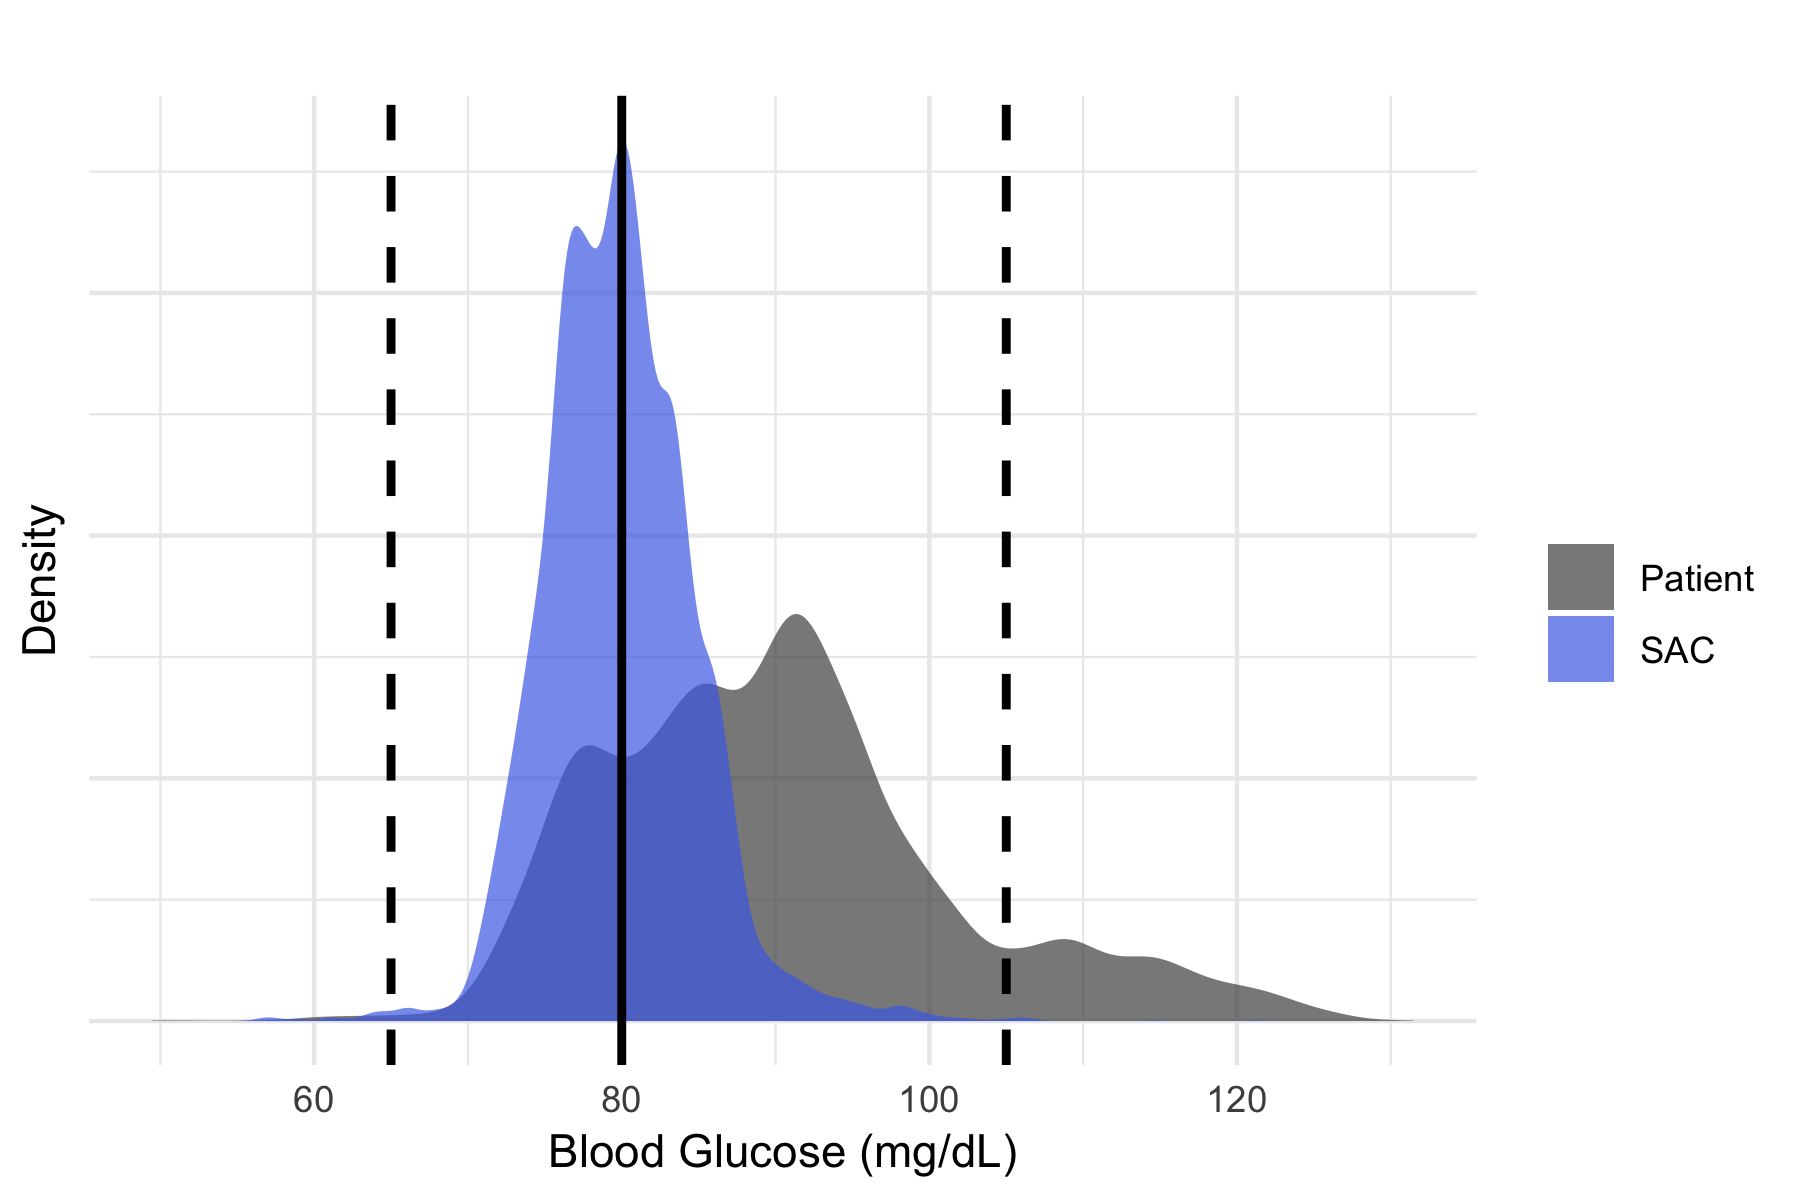 Figure 4. Distribution of blood glucose levels for Patient and SAC policies. SAC policy maintains blood glucose levels closer to safe target levels.